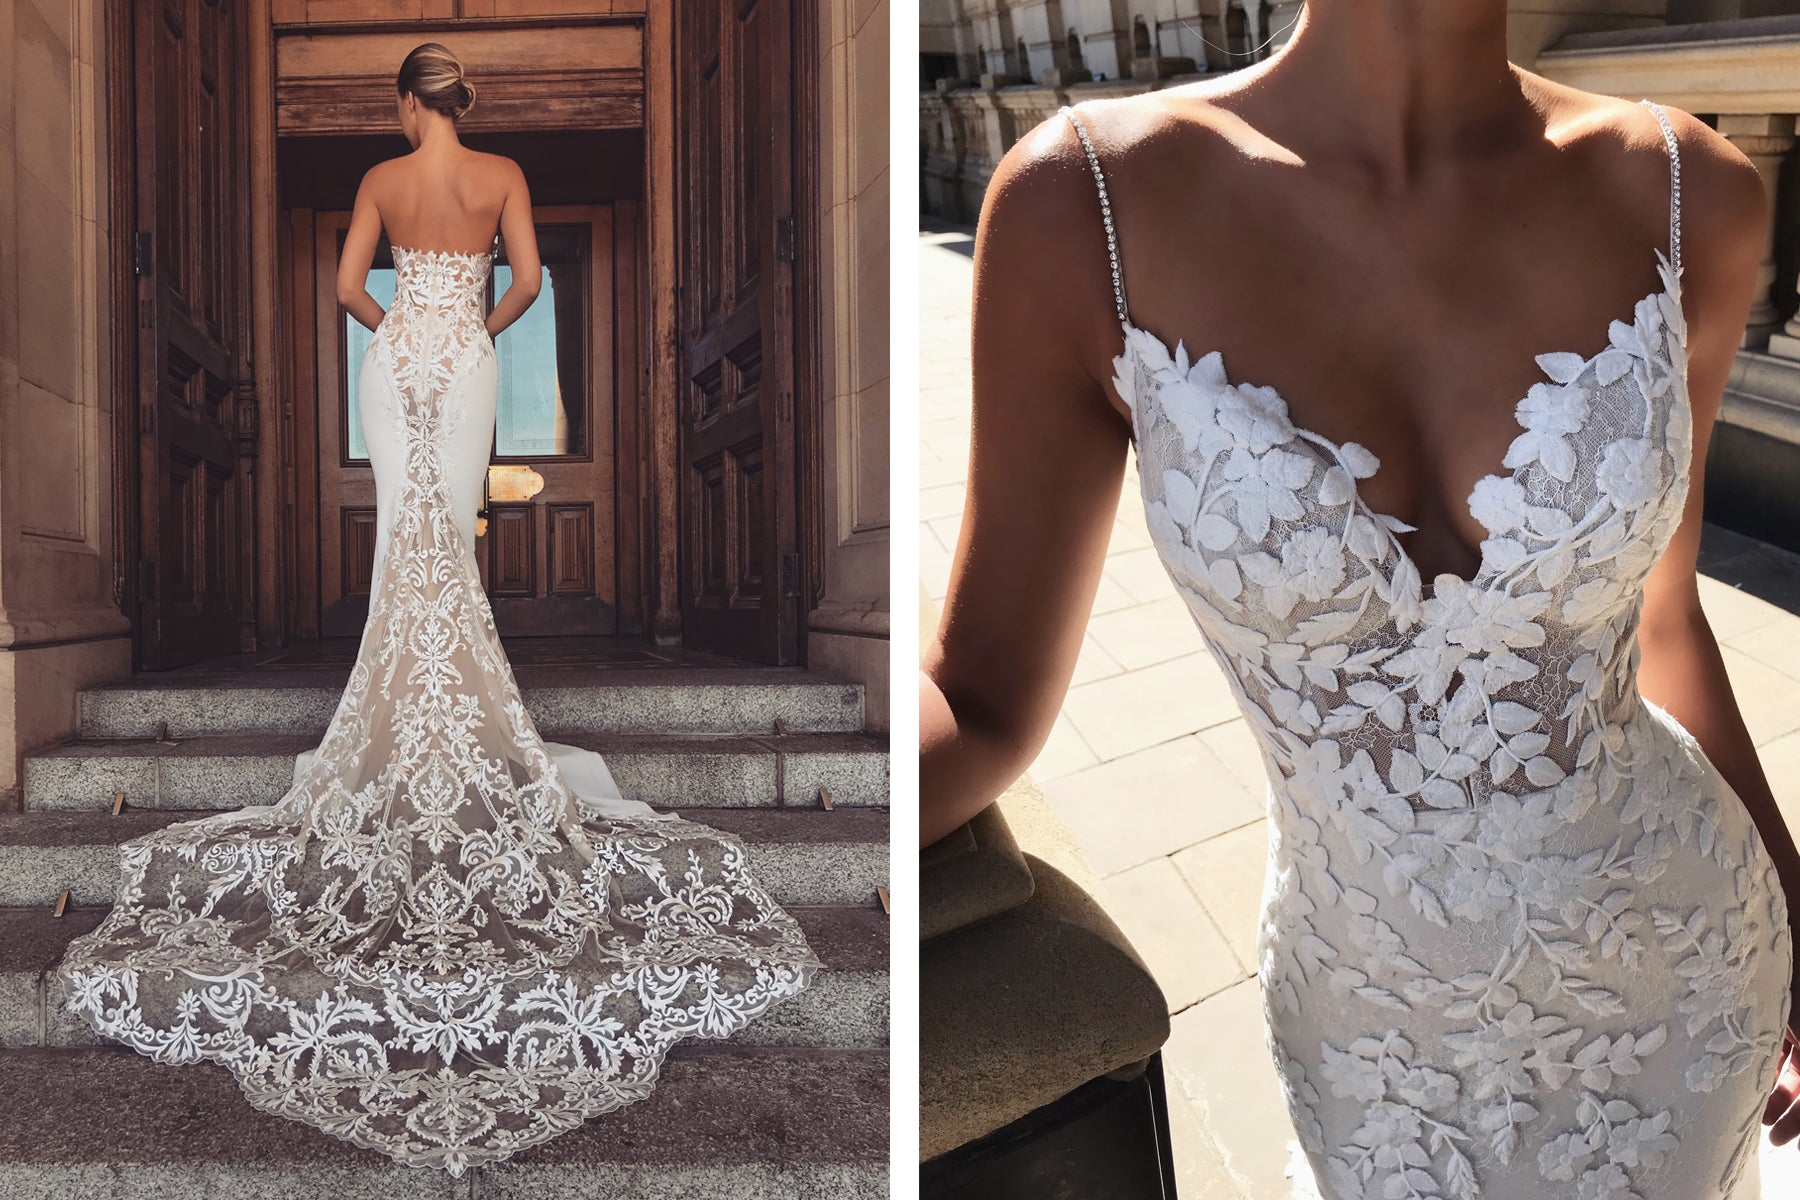 Eternal_bridal_wedding_dress_enzoani_2019_collection_4